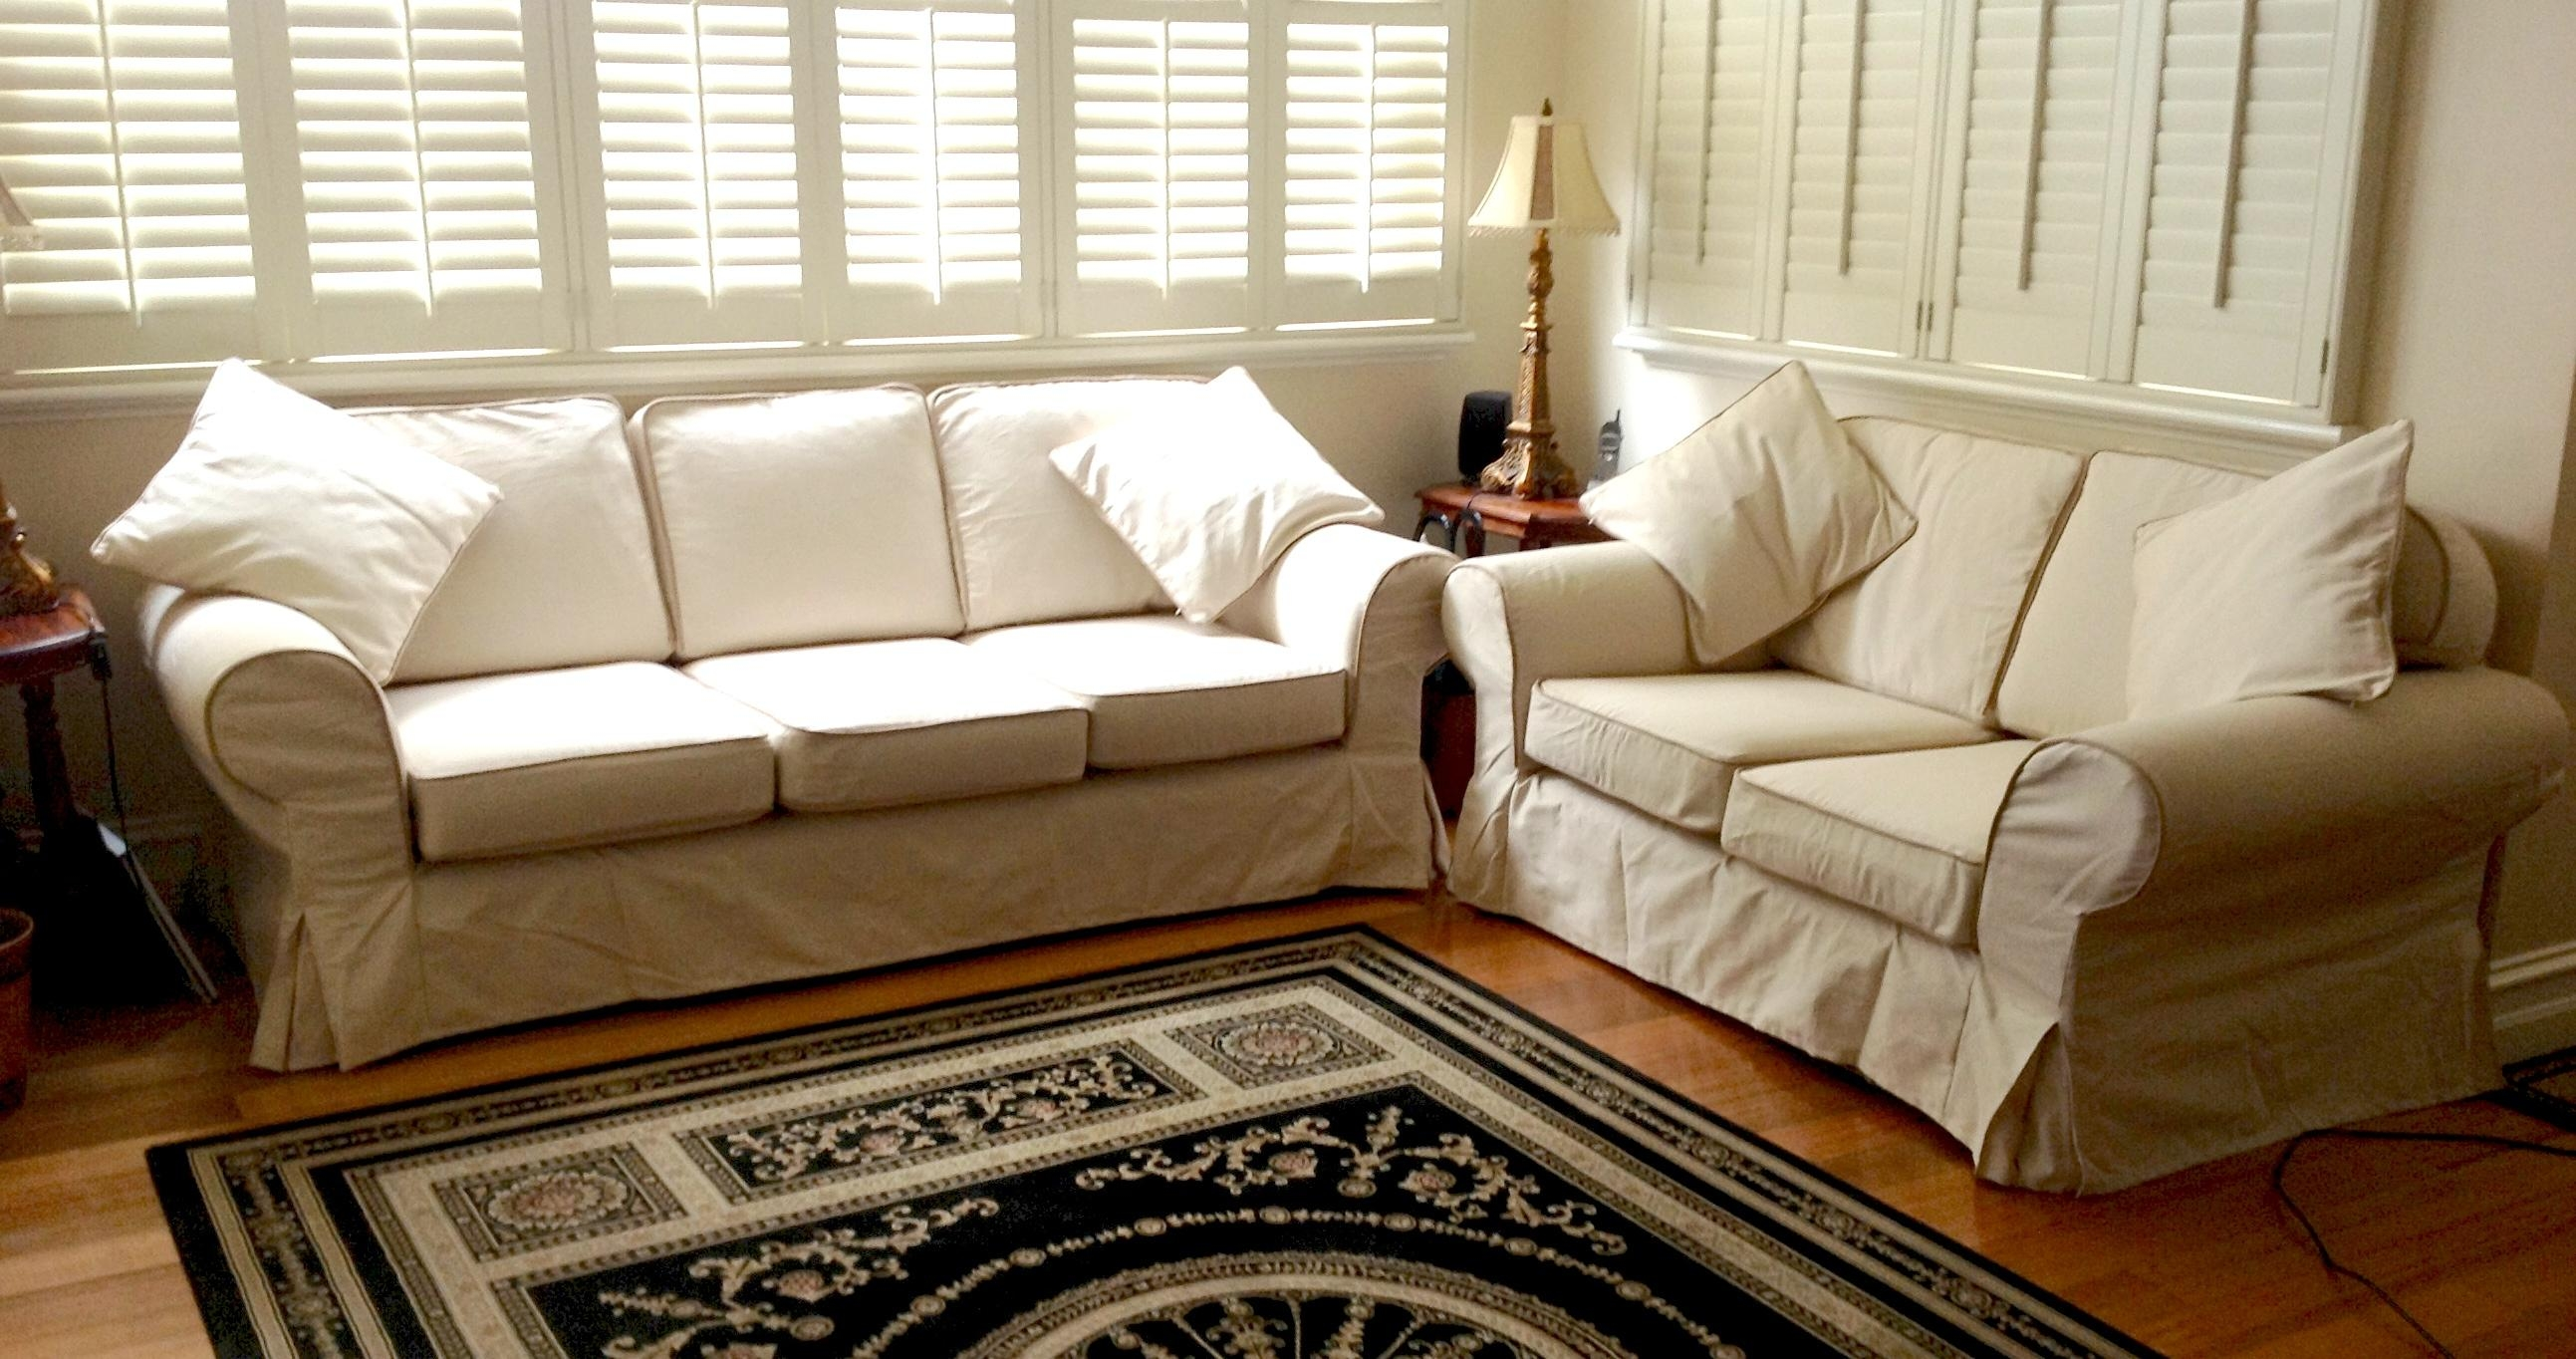 Custom Slipcovers And Couch Cover For Any Sofa Online Regarding Shabby Chic Sofa Slipcovers (View 13 of 20)